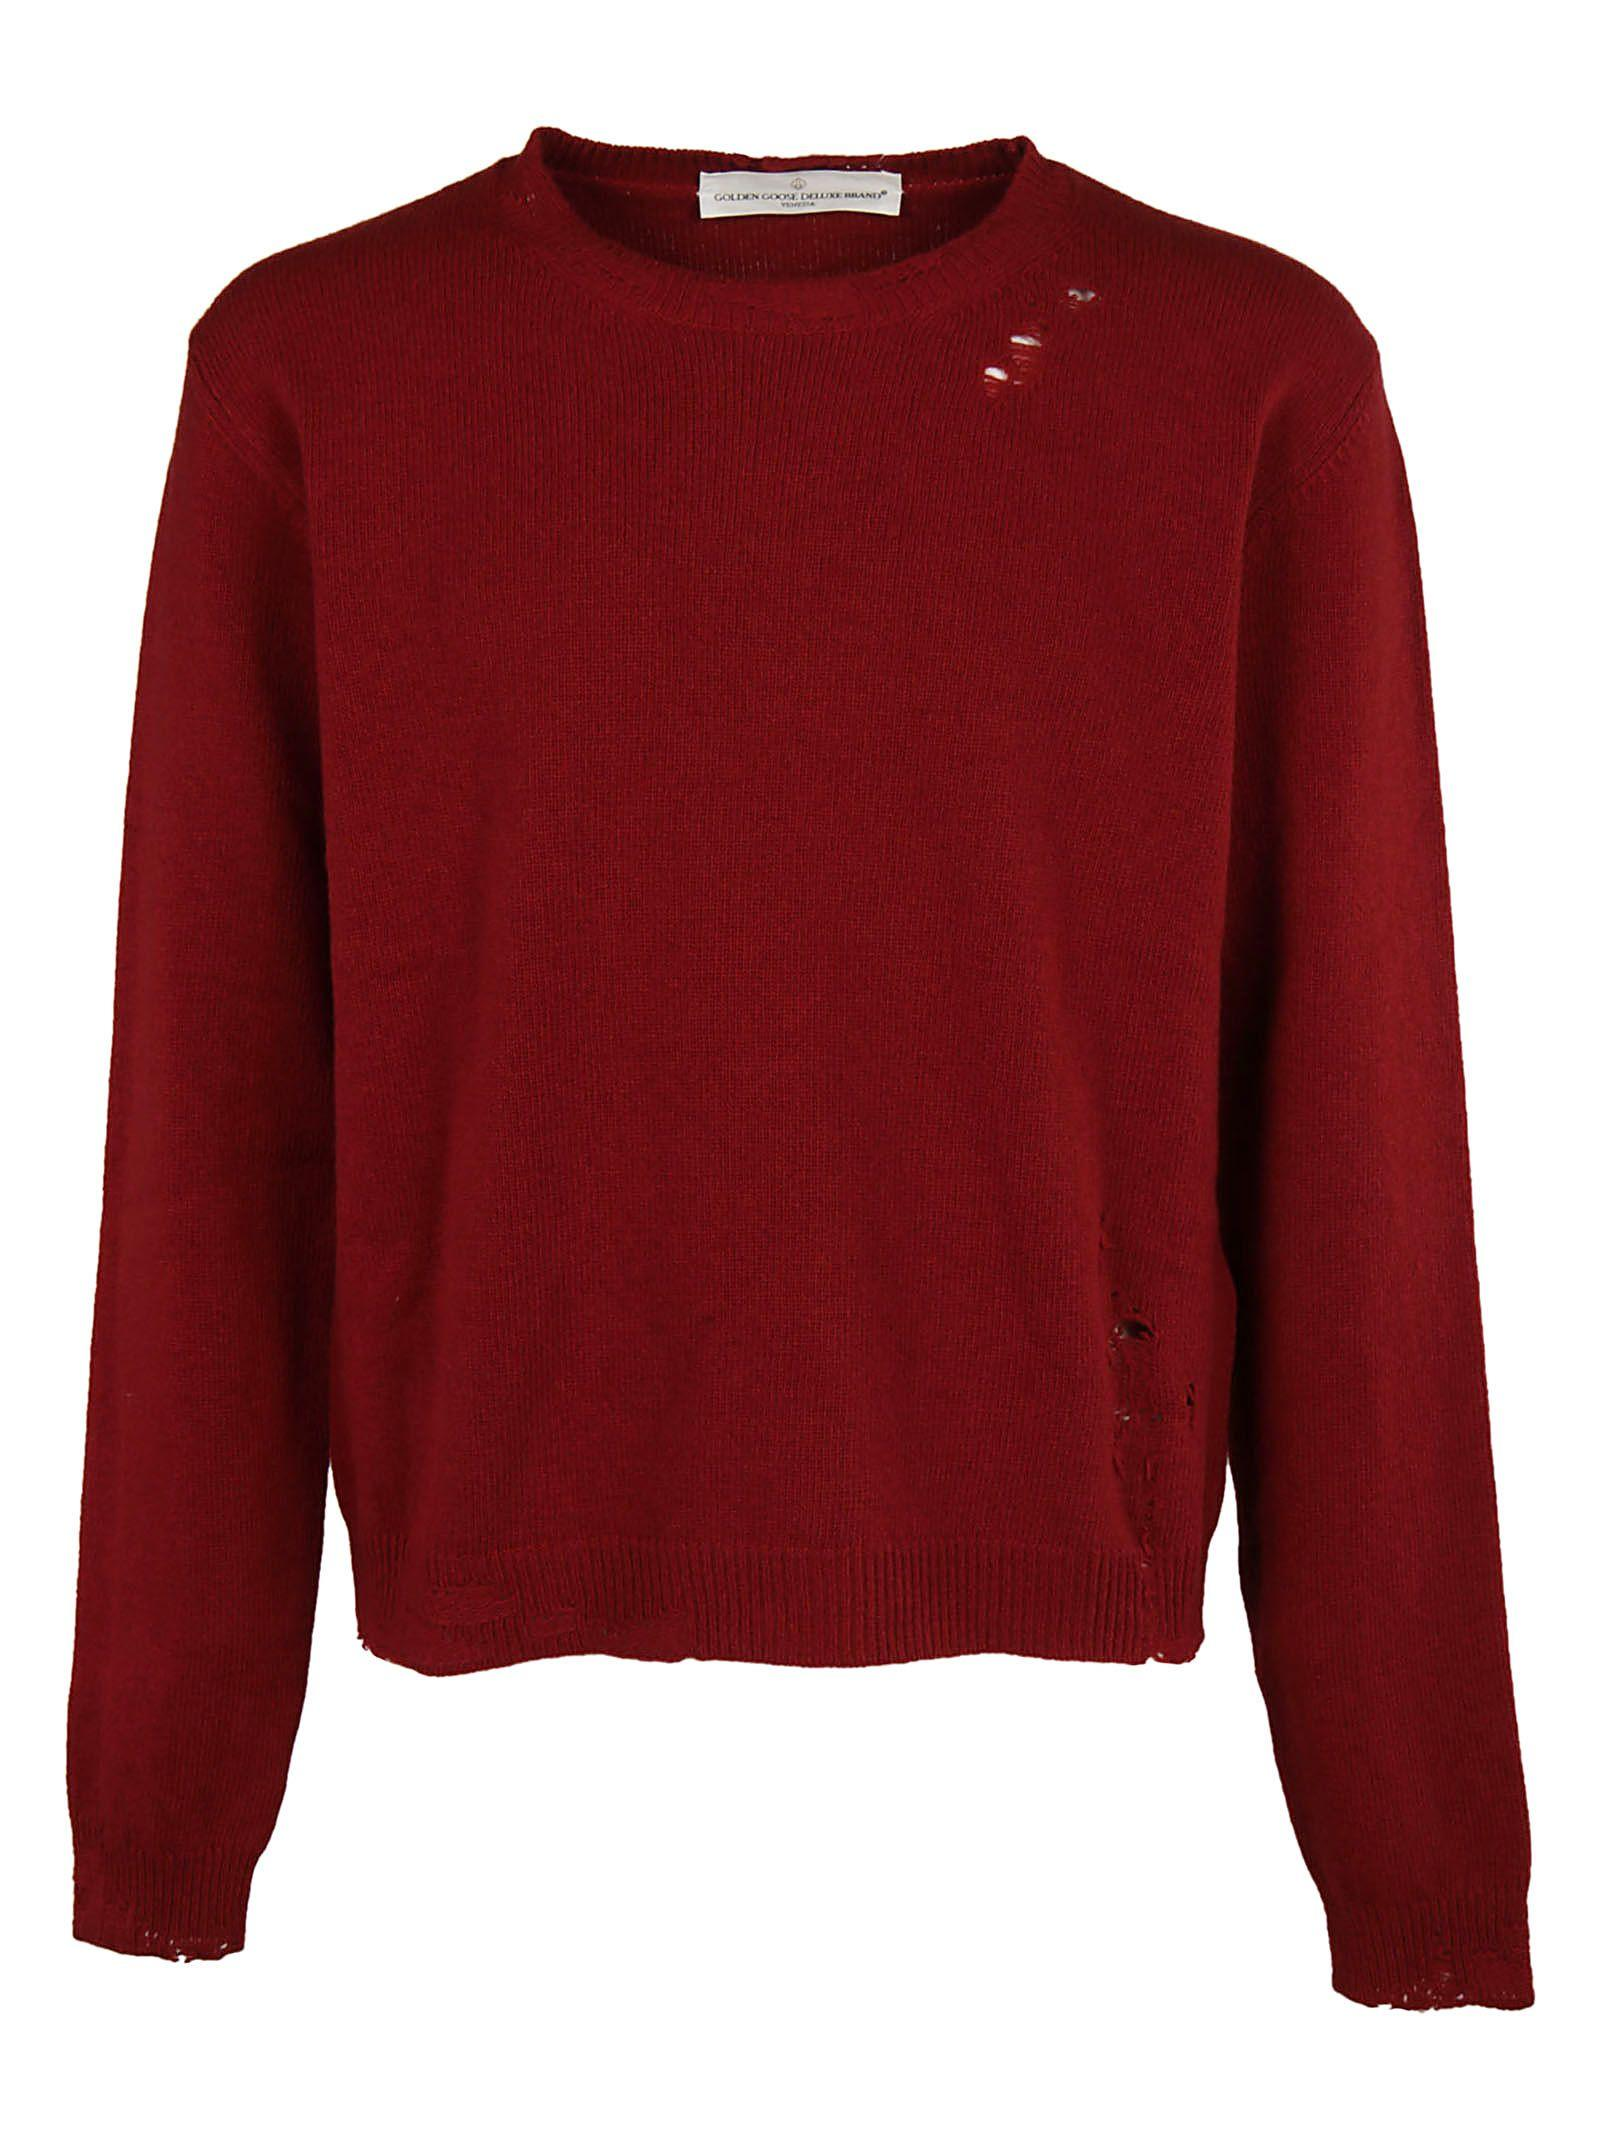 Golden Goose Classic Sweater In Red